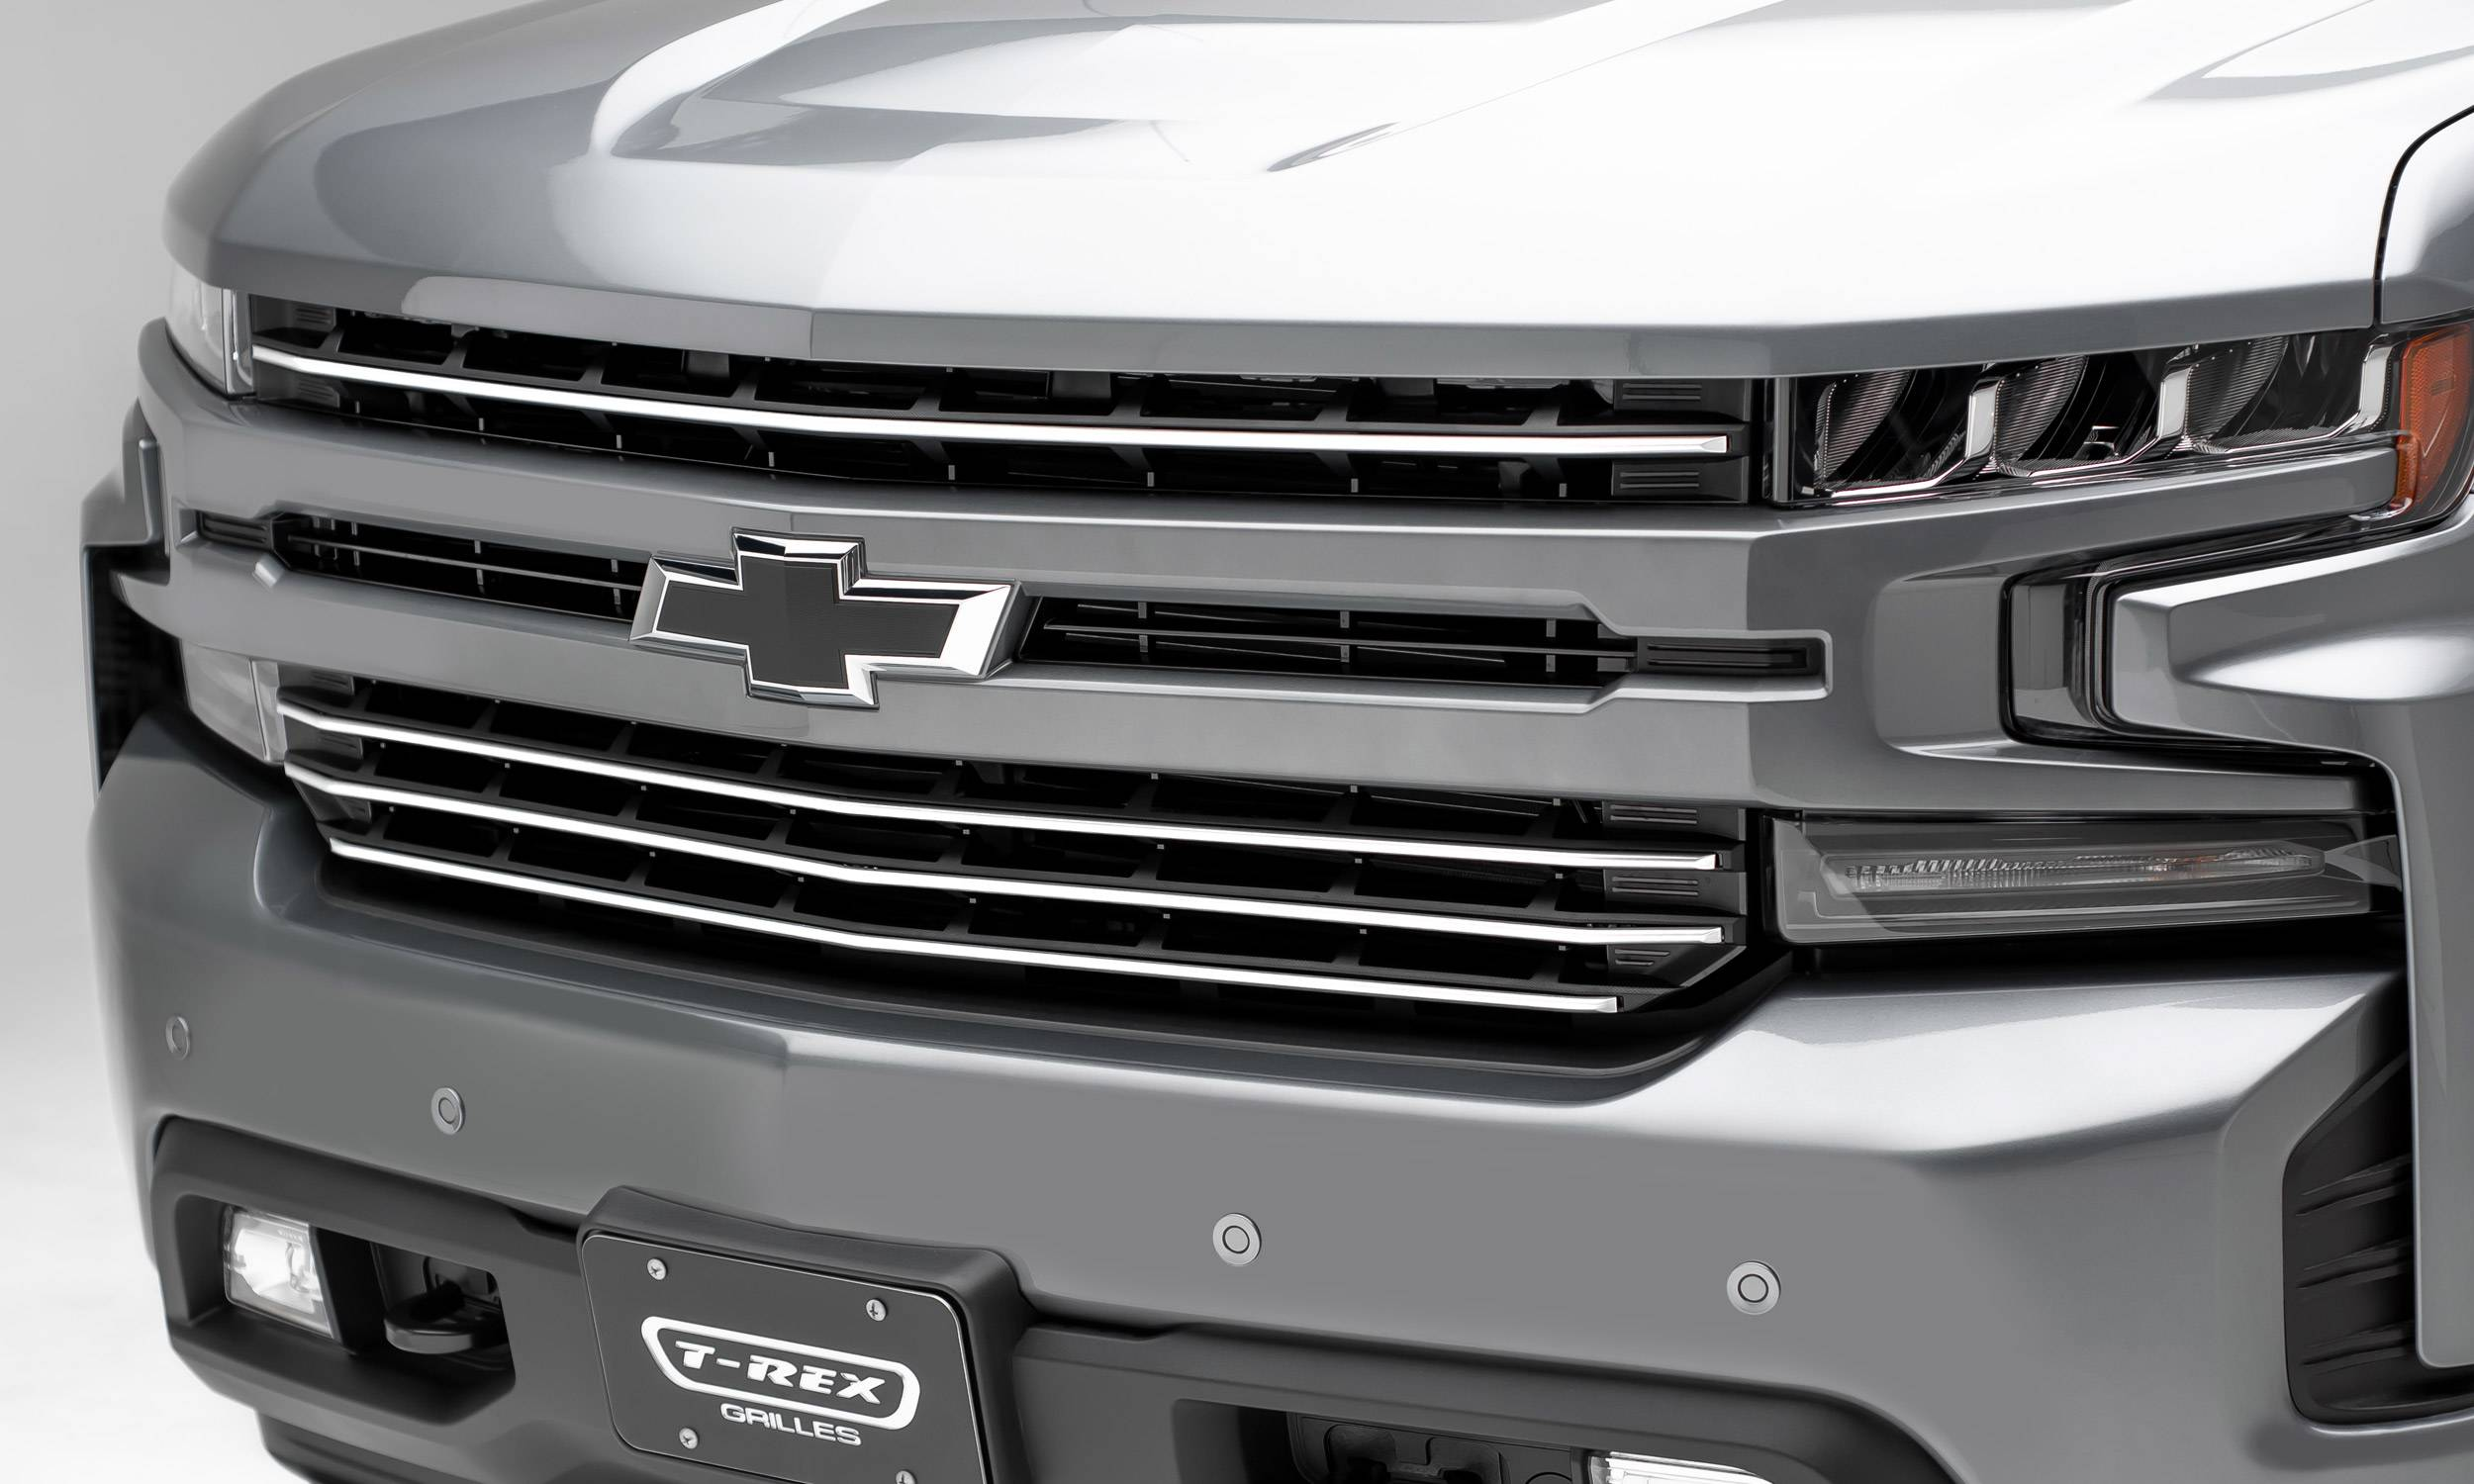 T-REX Grilles - 2019-2021 Silverado 1500 Trail Boss, RST, LT Round Billet Grille, Horizontal Round, Brushed, 4 Pc, Overlay, Does Not Fit Vehicles with Camera - PN #6211233